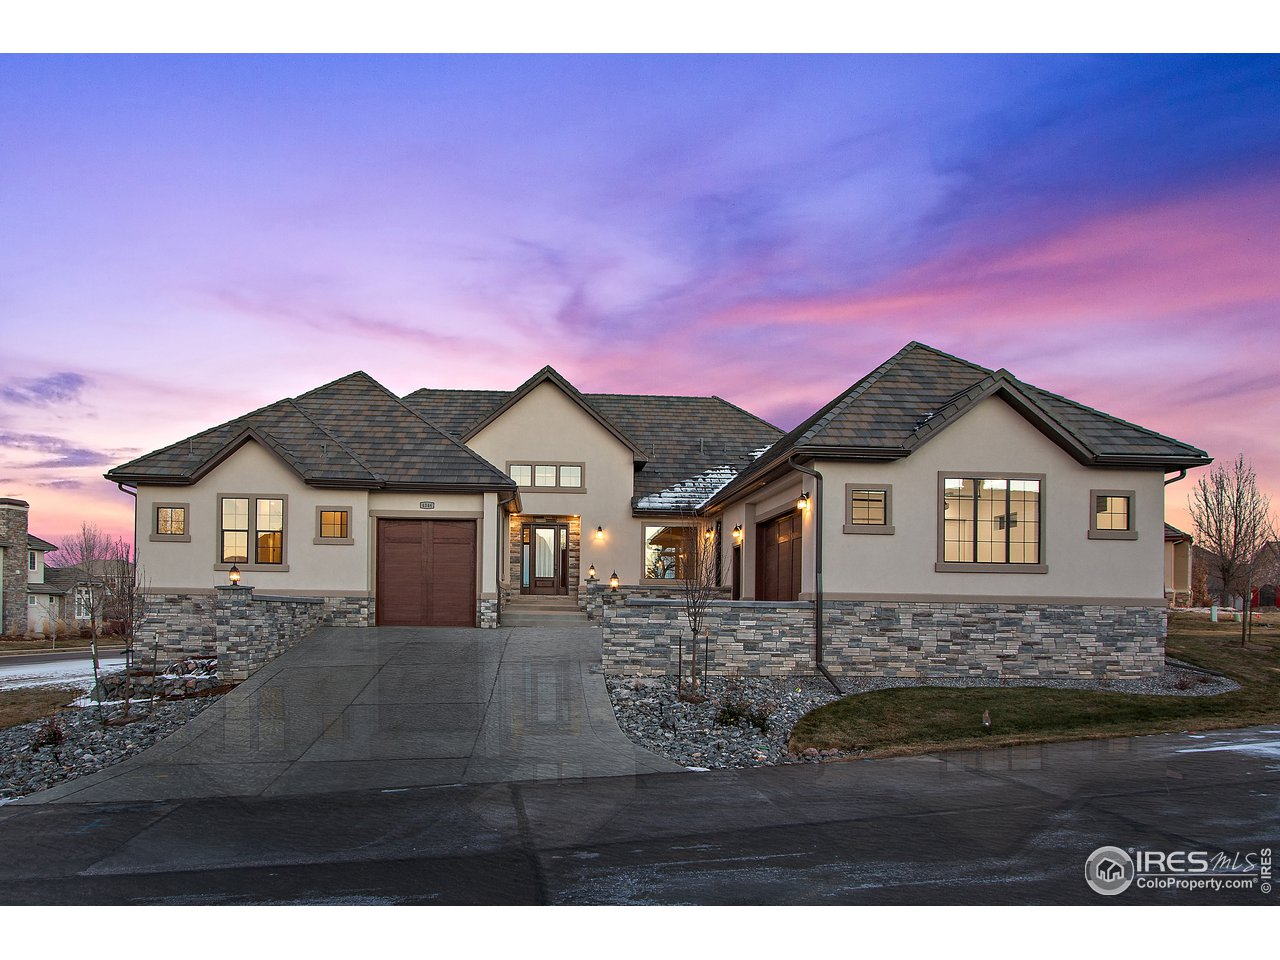 4146 HEATHERHILL CIR, LONGMONT, CO 80503